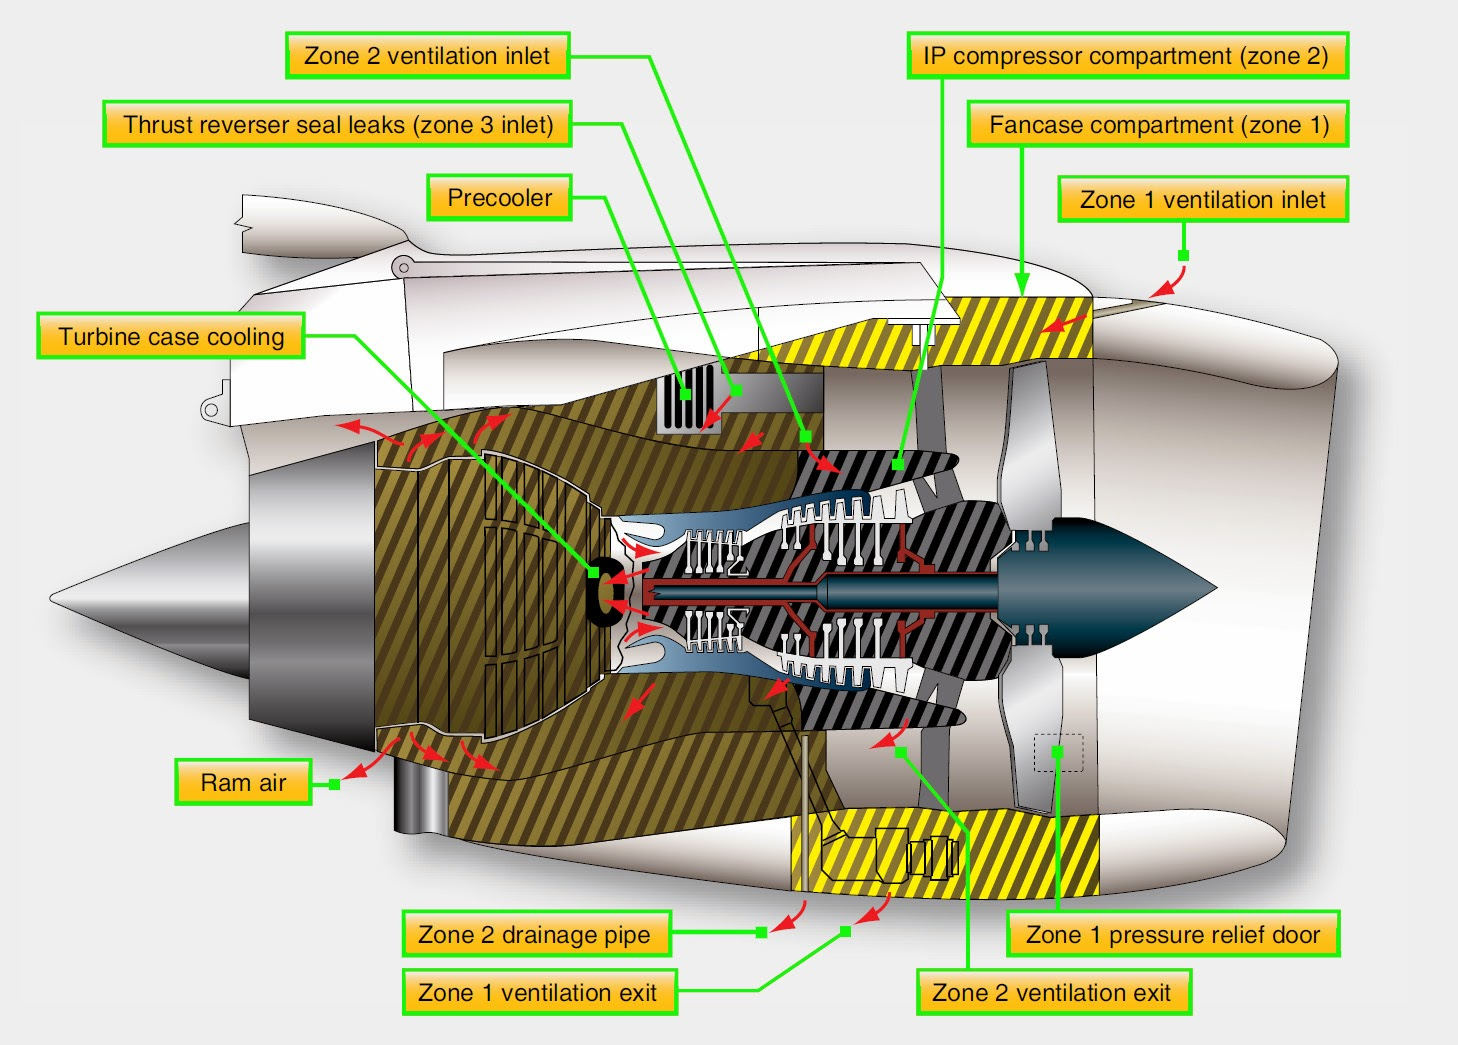 Aircraft Systems Engine Cooling General Diagram Accessory Zone